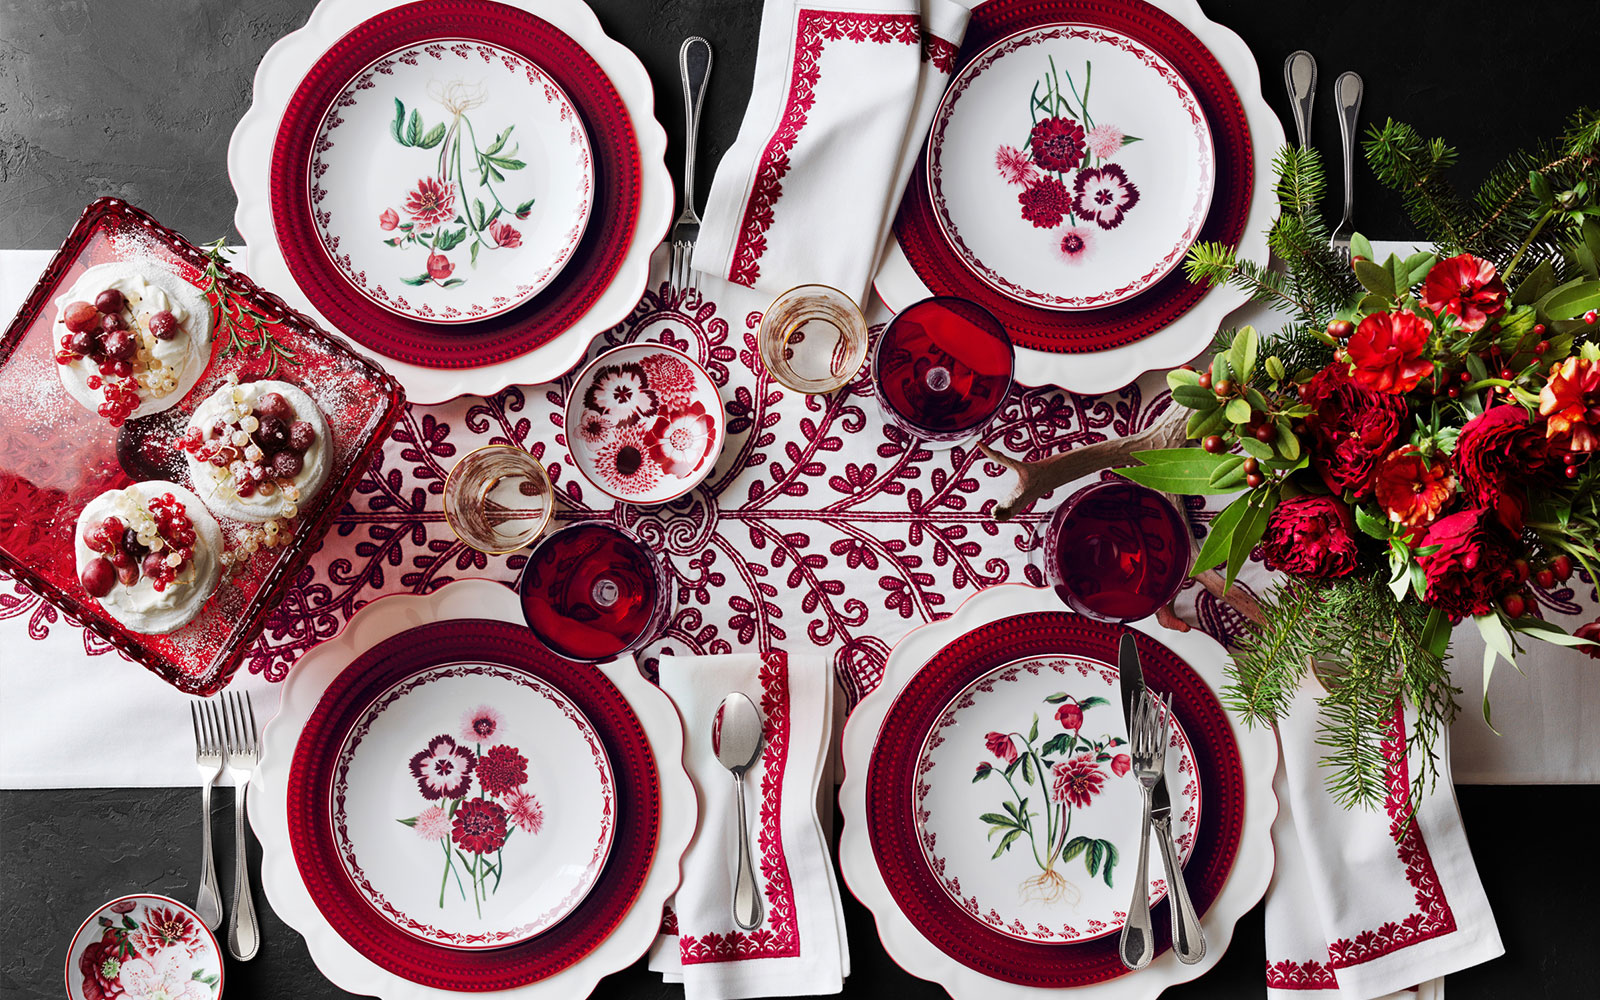 A tablescape showcasing the new plates, glasses and linens from the AERIN Collection by Williams Sonoma